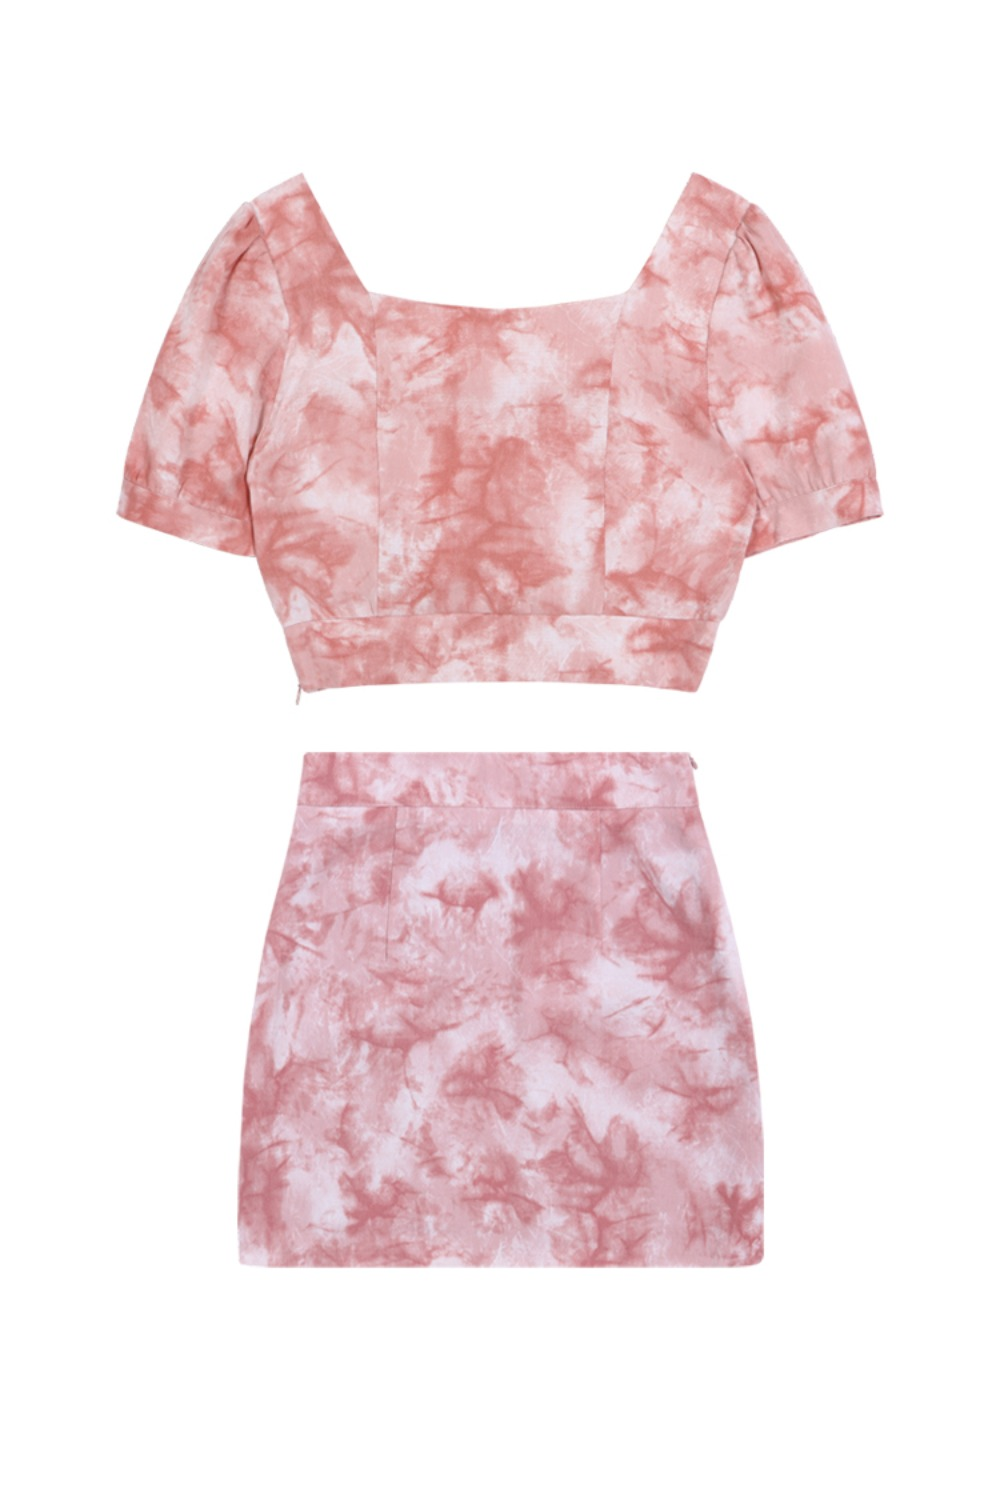 HIDE Tie Dye Crop Blouse & Skirt PINK